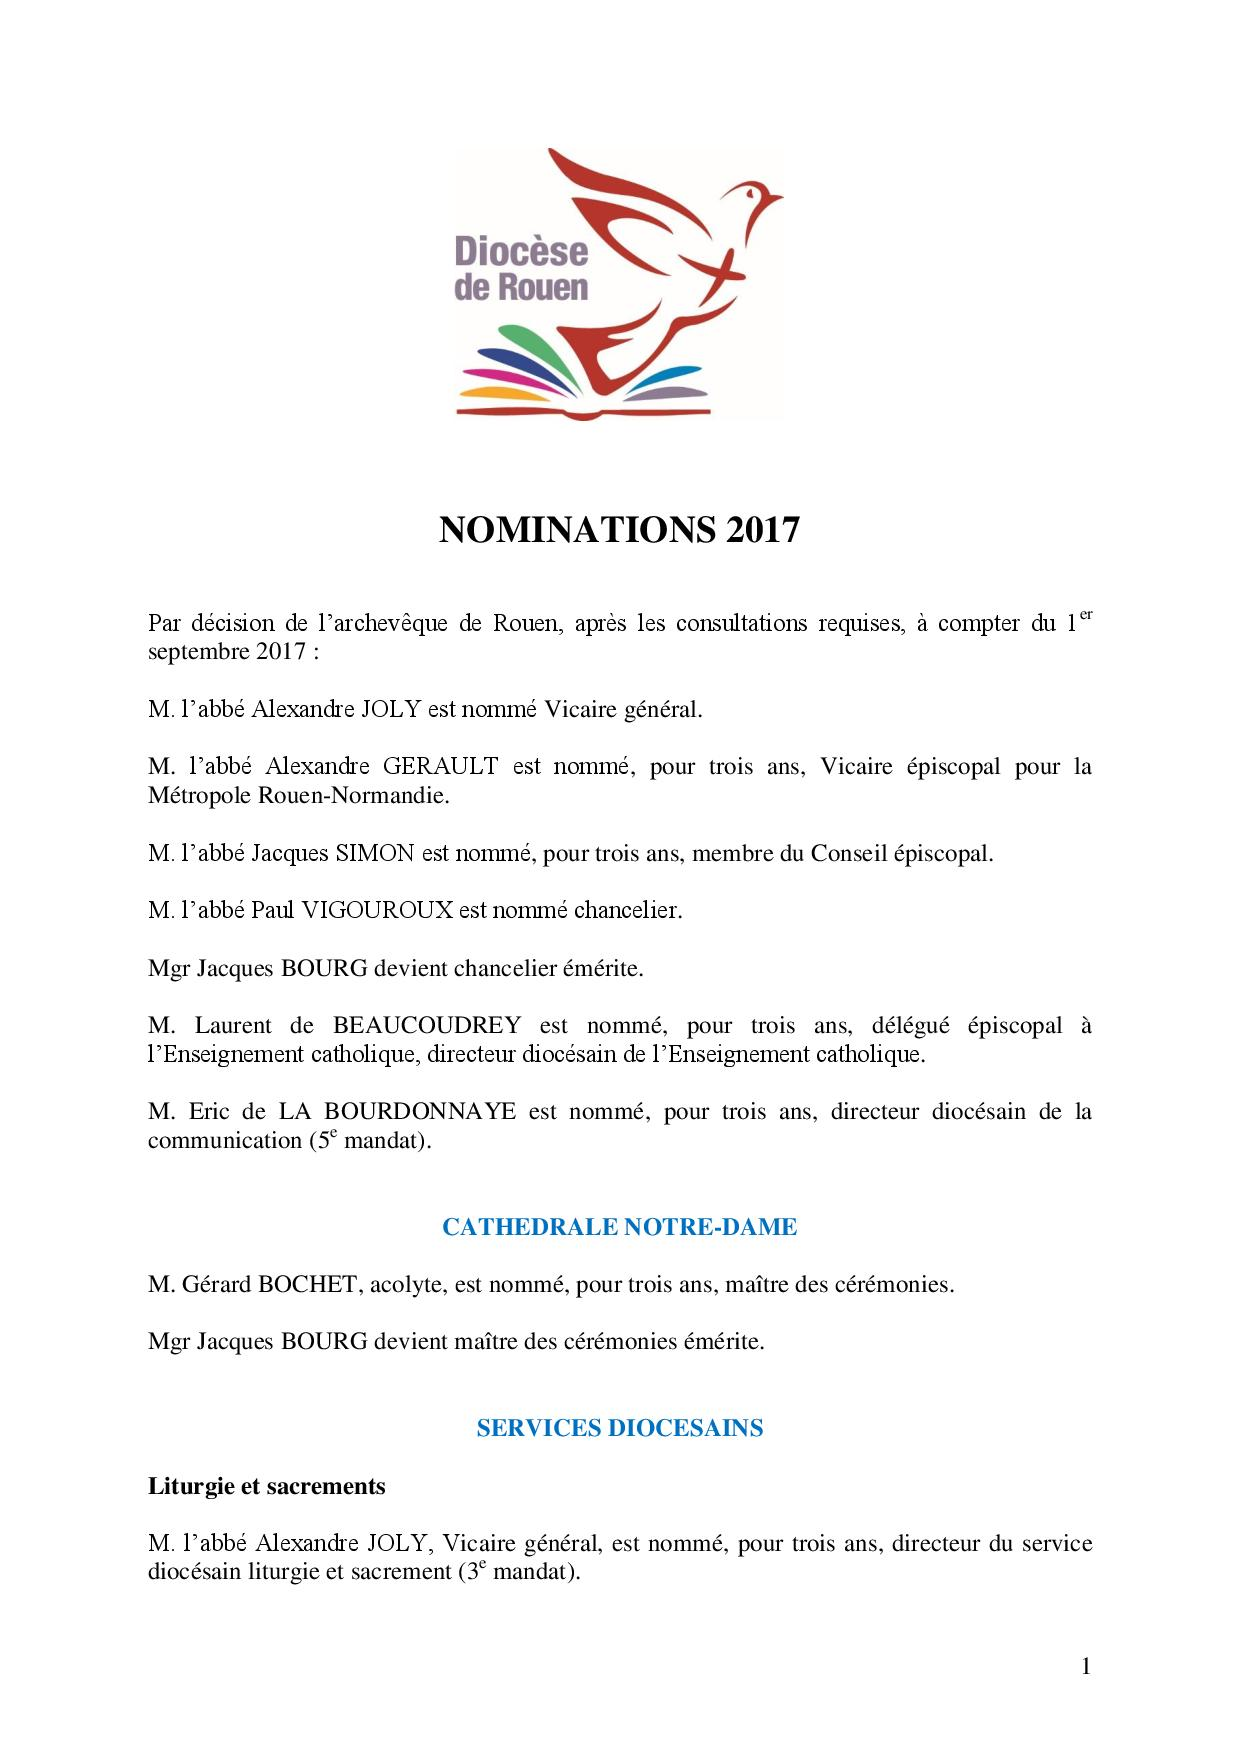 Nominations 2017-page-001